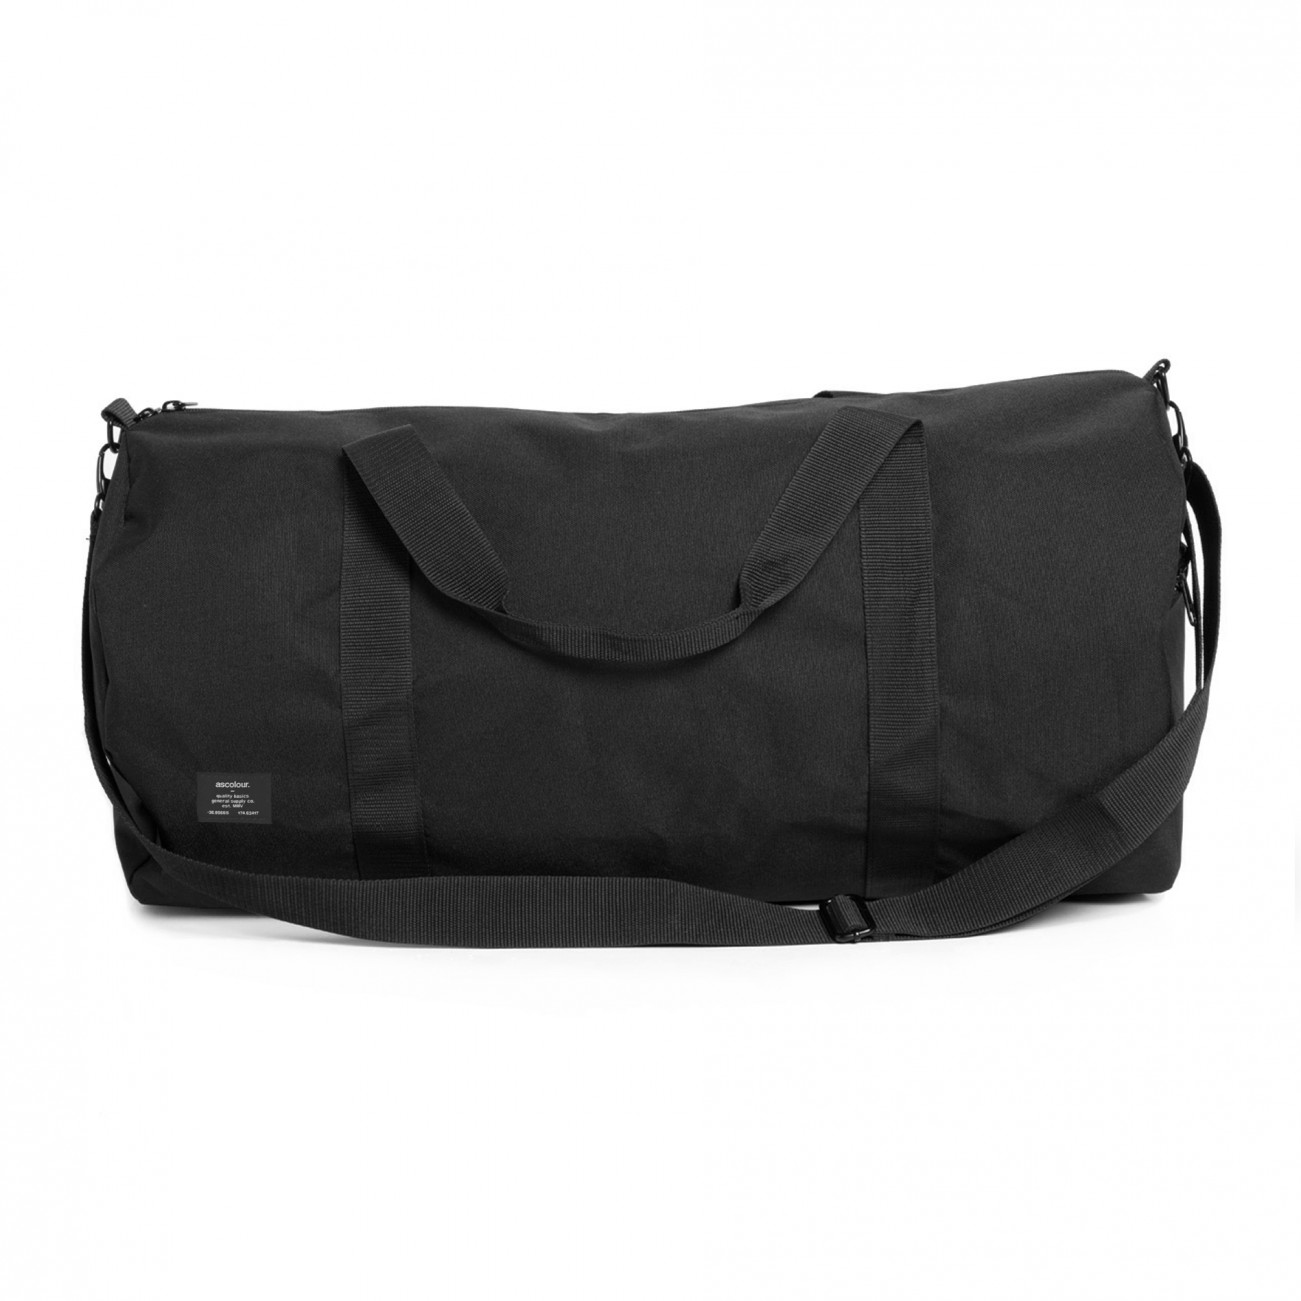 1003_duffel_bag_black_front.jpg